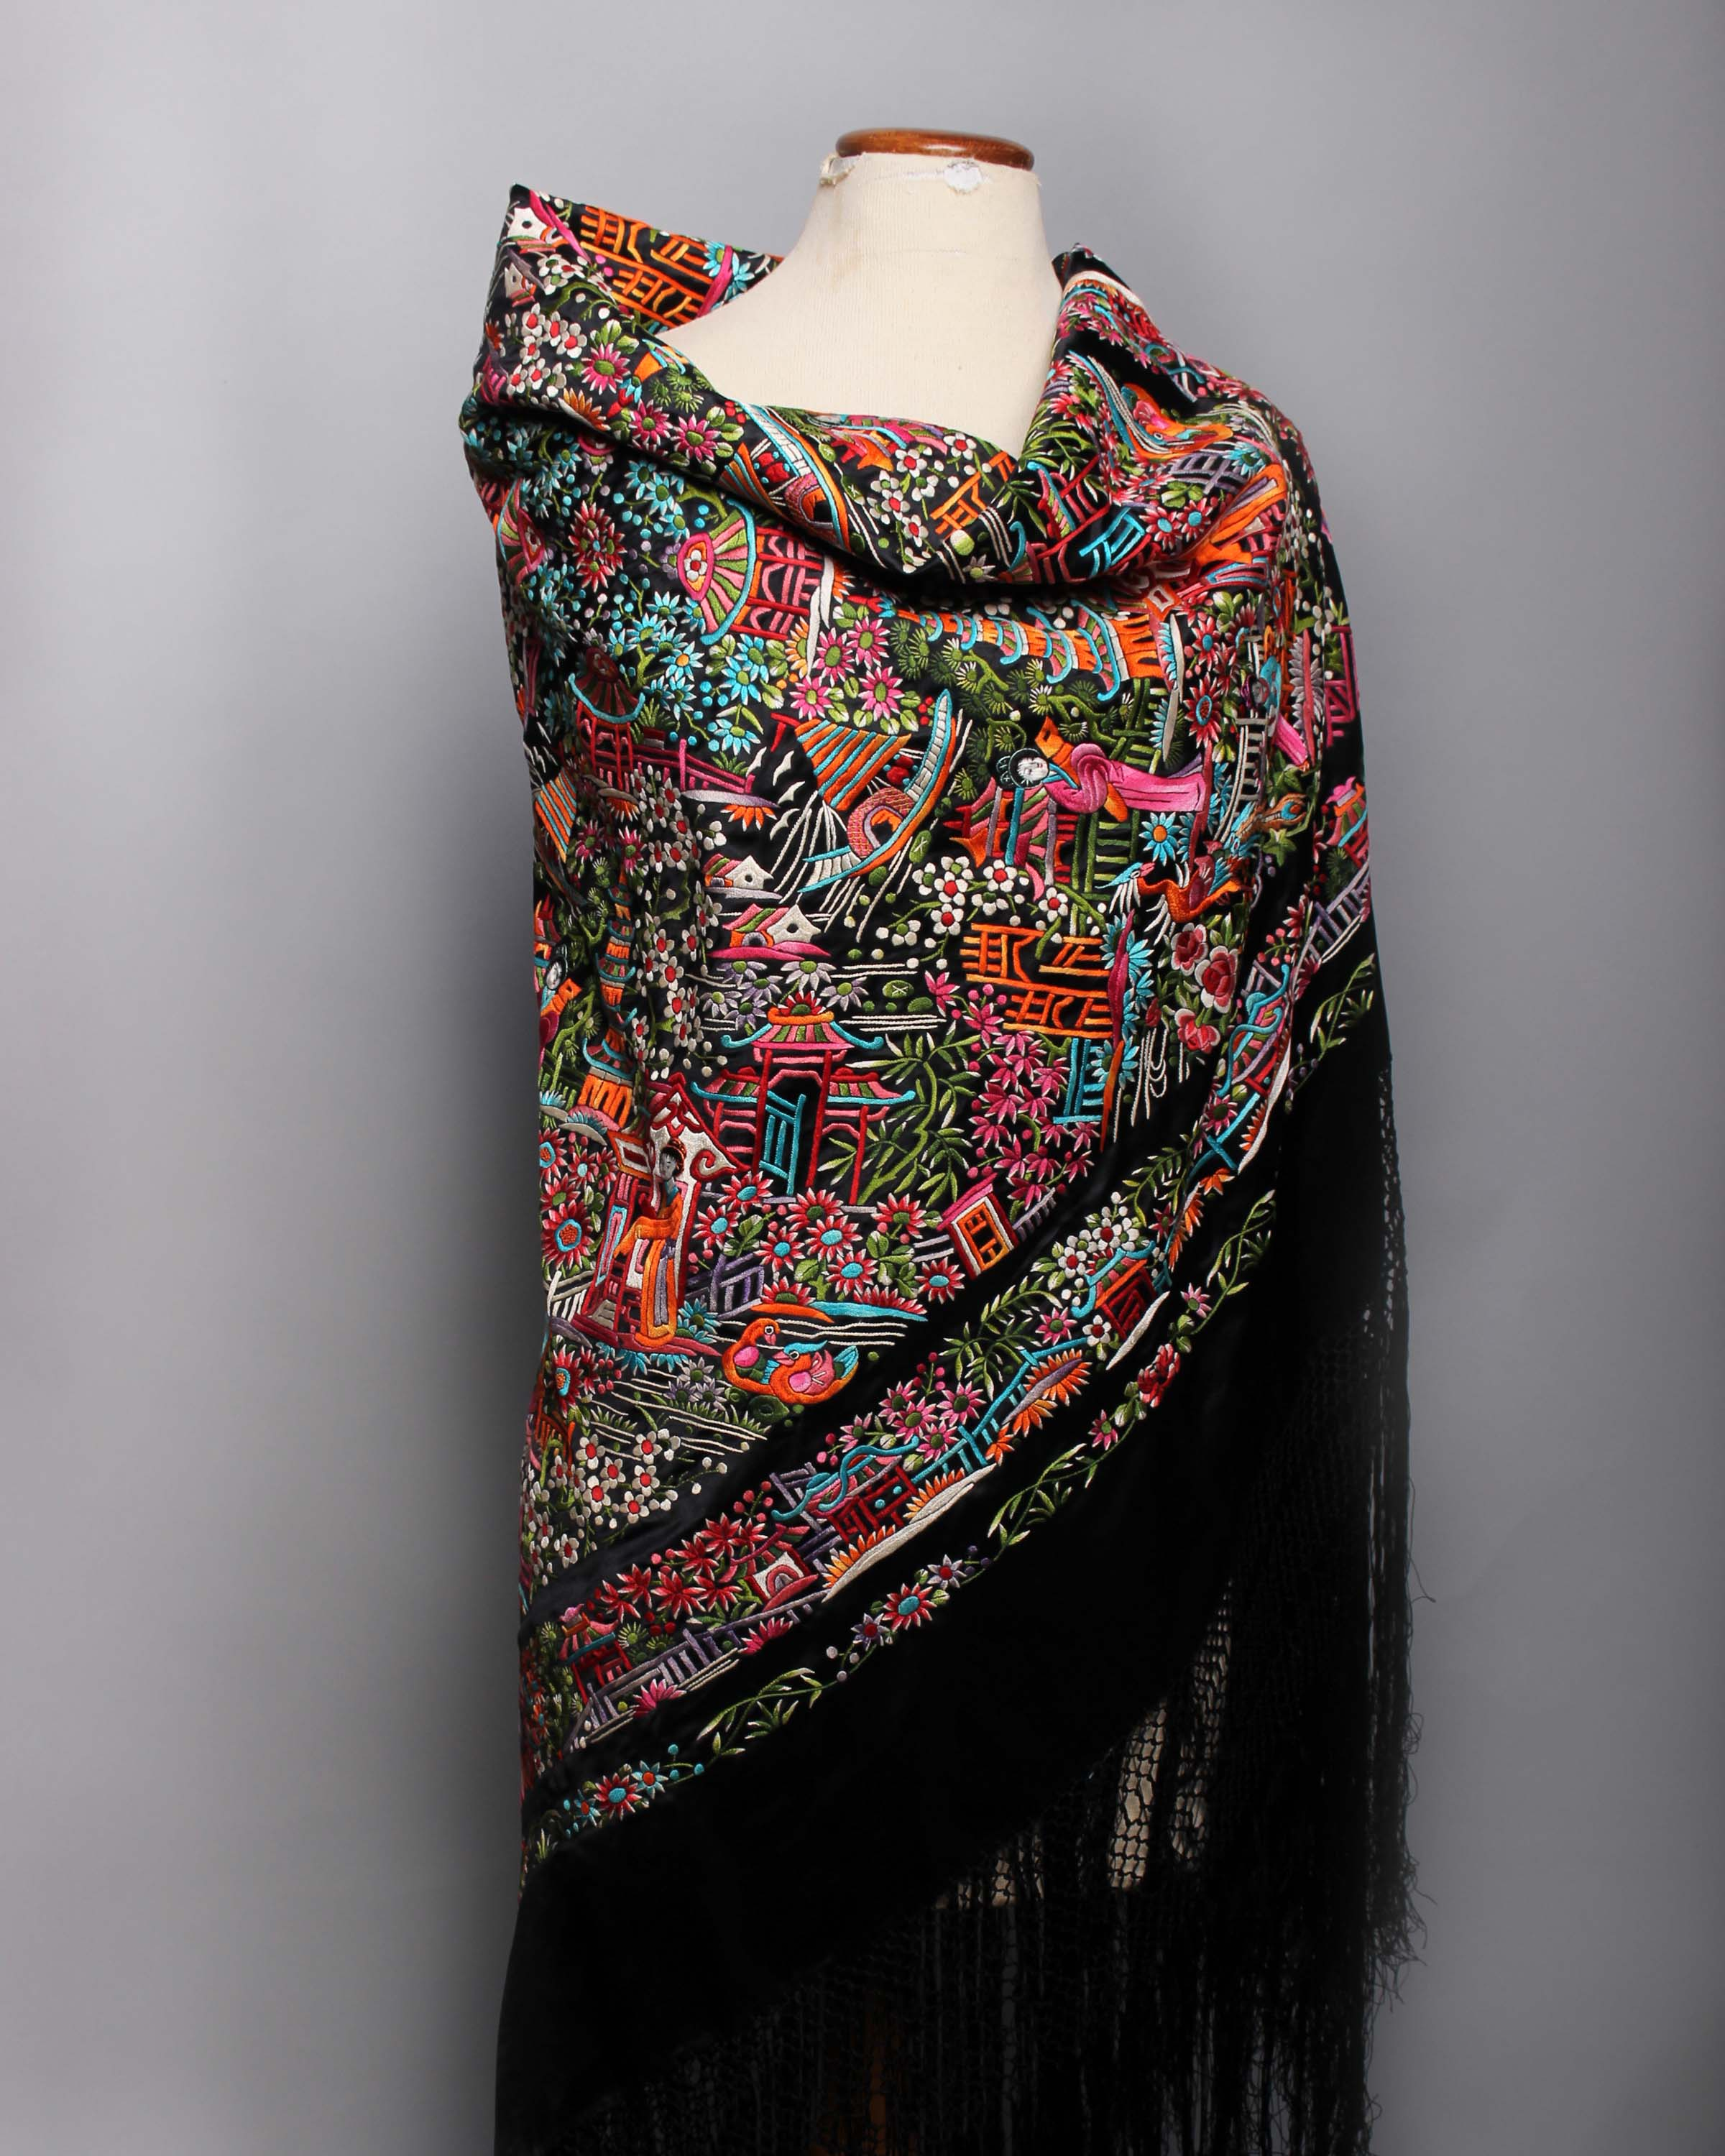 Lot 51 - An early 20th Century black silk fringed Chinese shawl, with a densely embroidered design of a